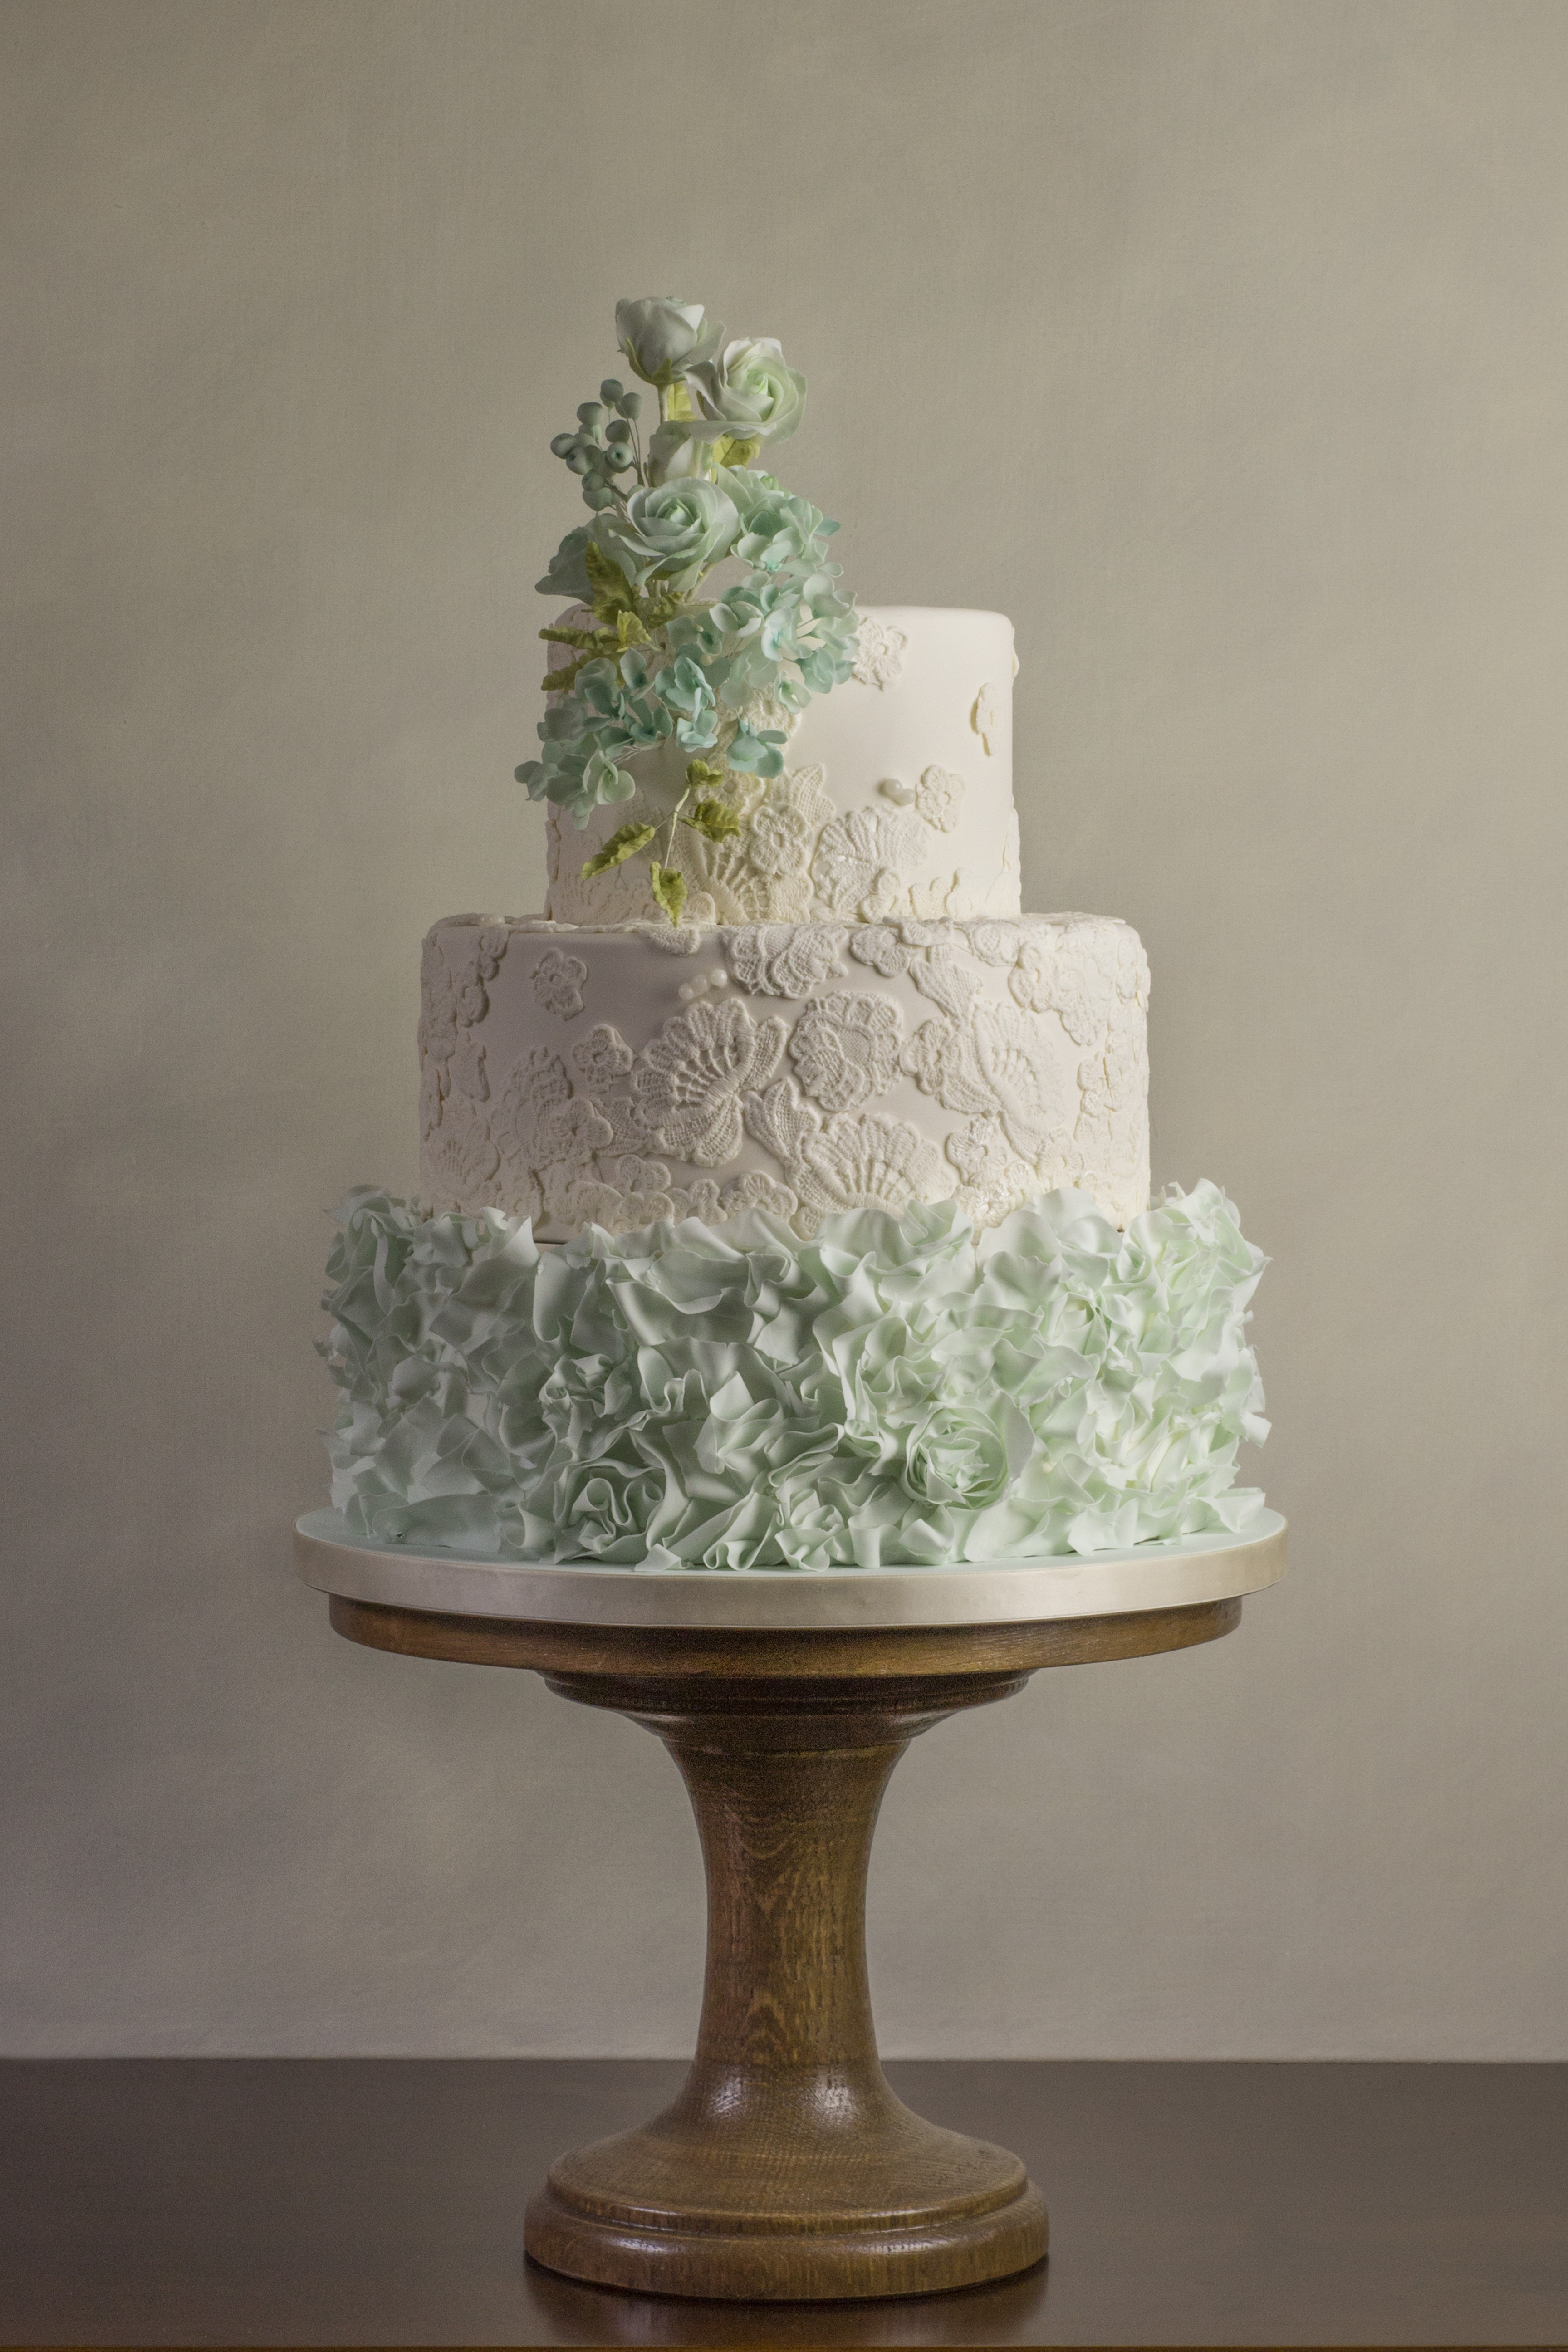 White and Pastel green ruffle ombre wedding cake with sugar flowers